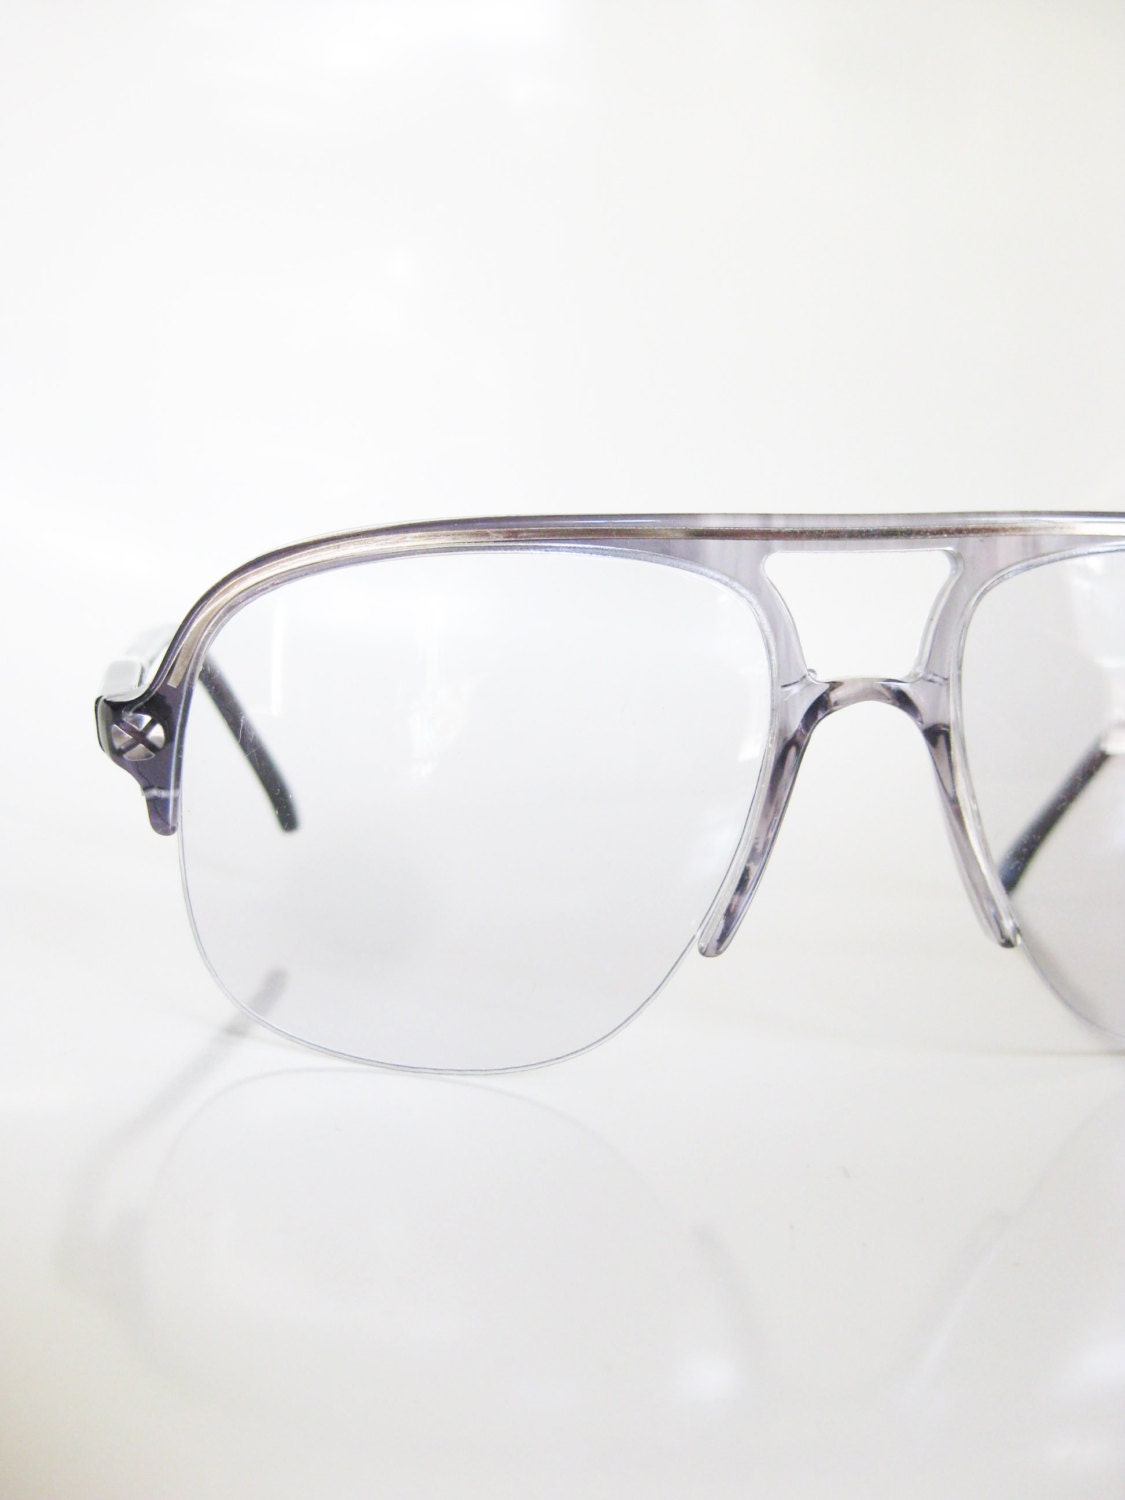 Glasses Frames Italian : Vintage Italian Sunglasses Mens Eyeglasses Double Aviator